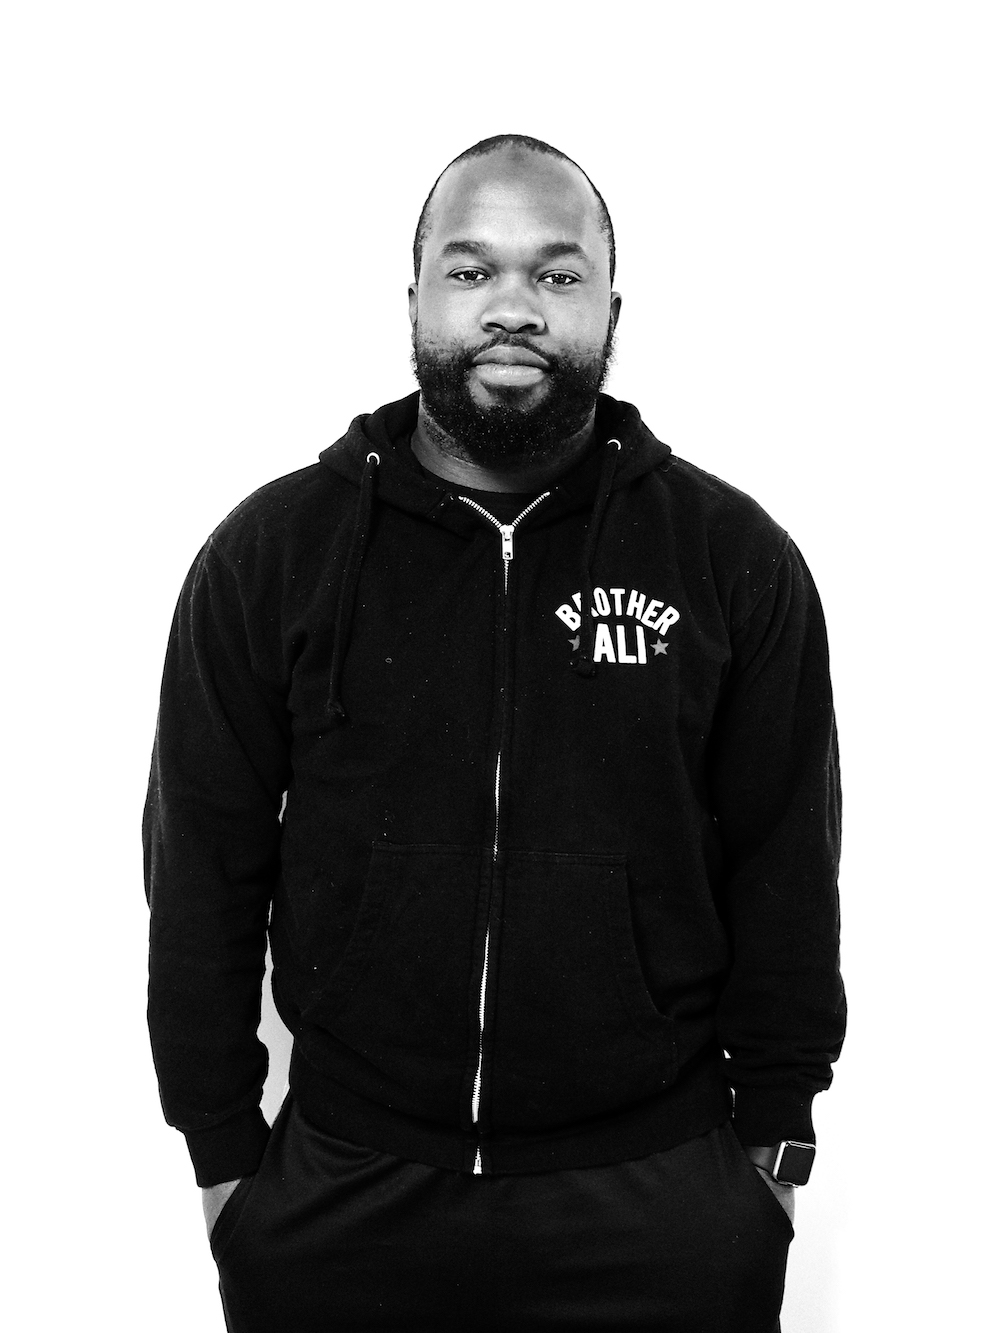 Muhammad Yahya Oda - Muslim CohortSponsor: Center DCMuhammad Yahya Oda is an artist with a background in Hip-Hop and Spoken Word Poetry. He has won three individual Poetry slam competitions, two in San Diego and one in Michigan City, Indiana, and has made some ground with the independent record label, Magnetic Flux Recordings.Instagram: @muhammadodausa